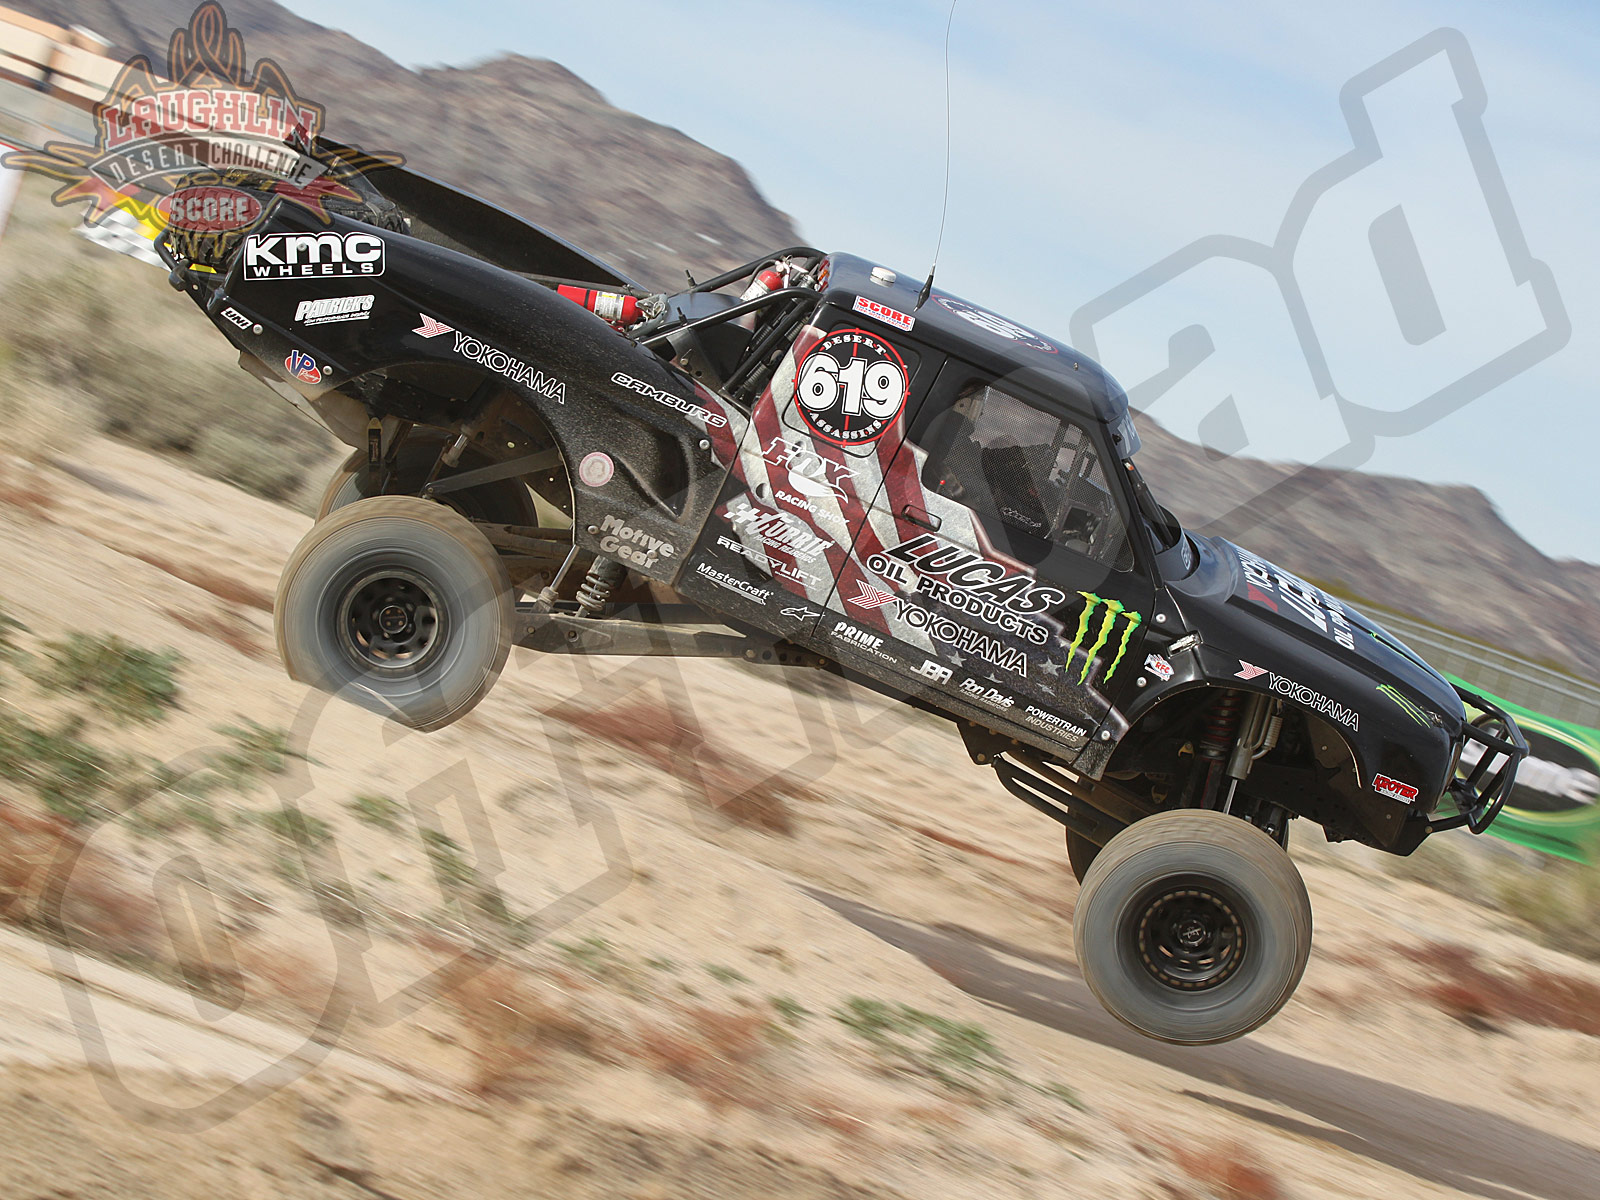 012011or 6639+2011 score laughlin desert challenge+truck classes